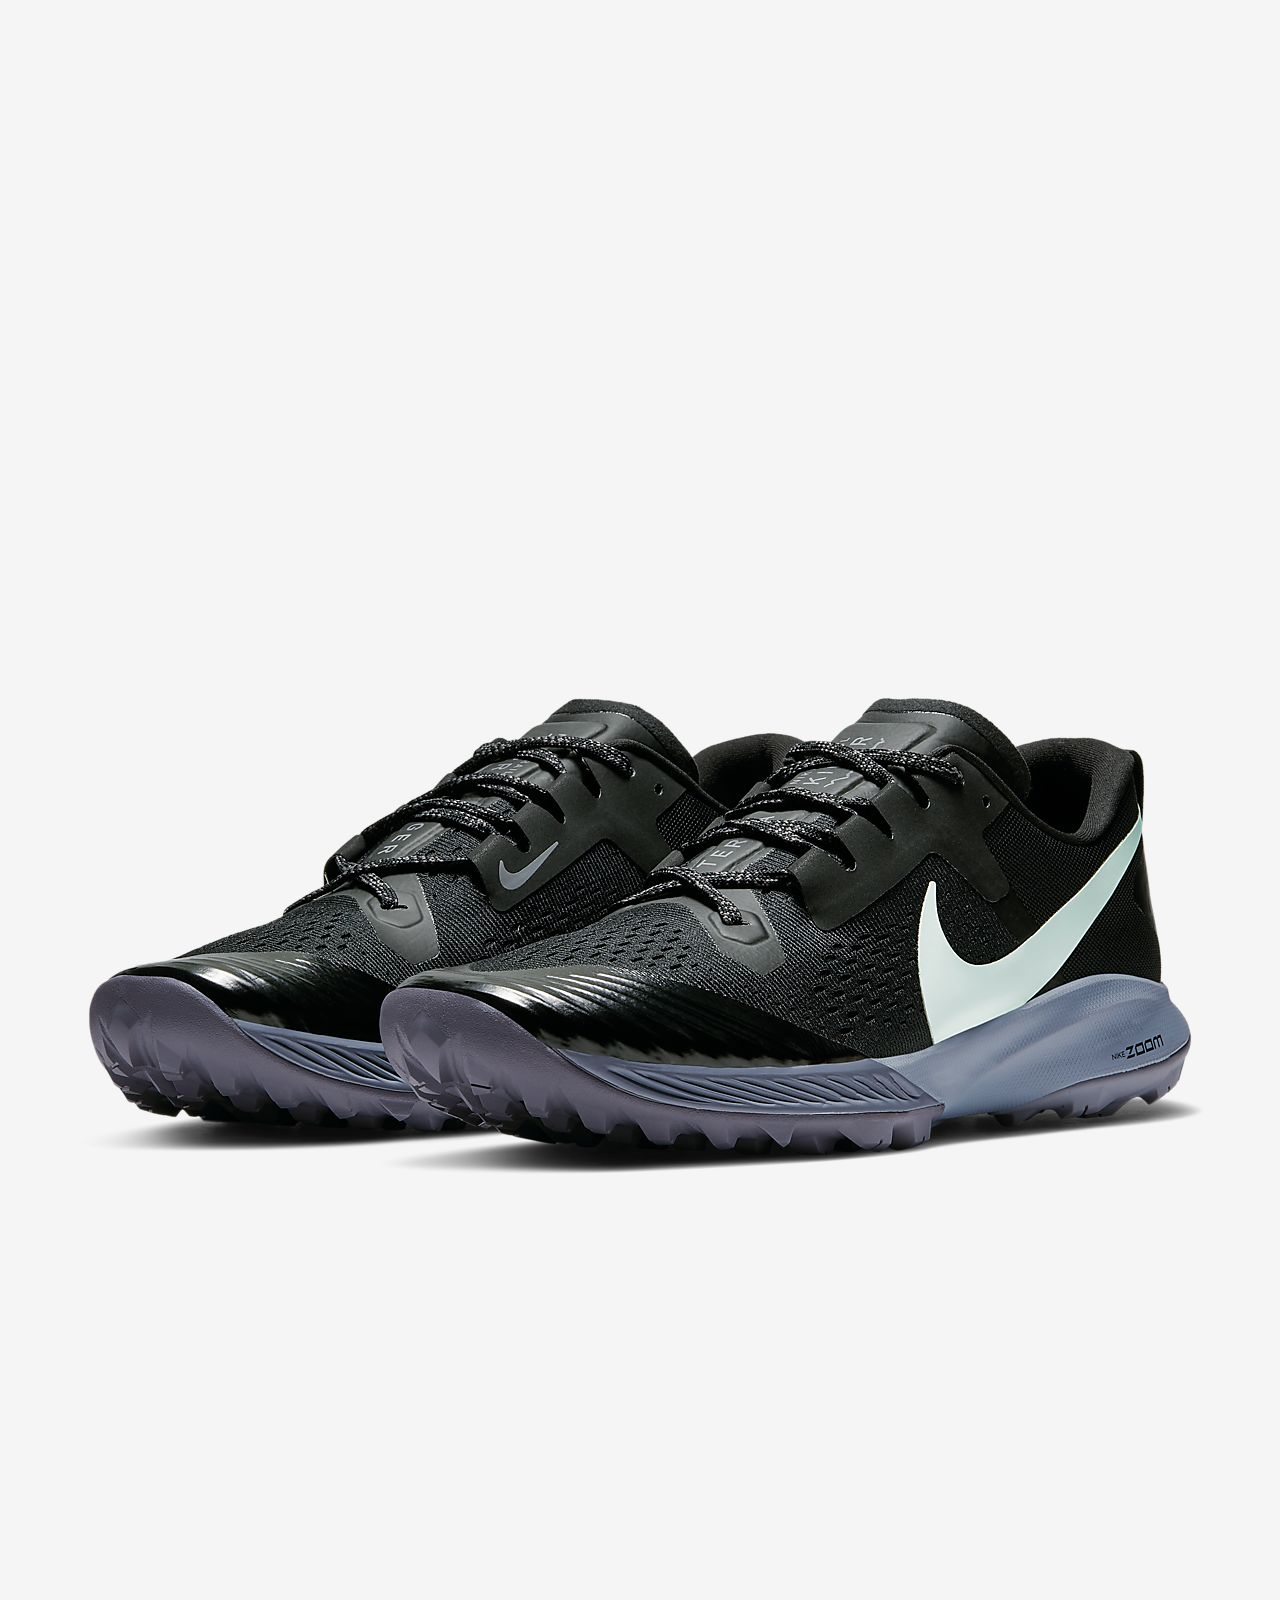 36604cabe2a8 Nike Air Zoom Terra Kiger 5 Men s Running Shoe. Nike.com